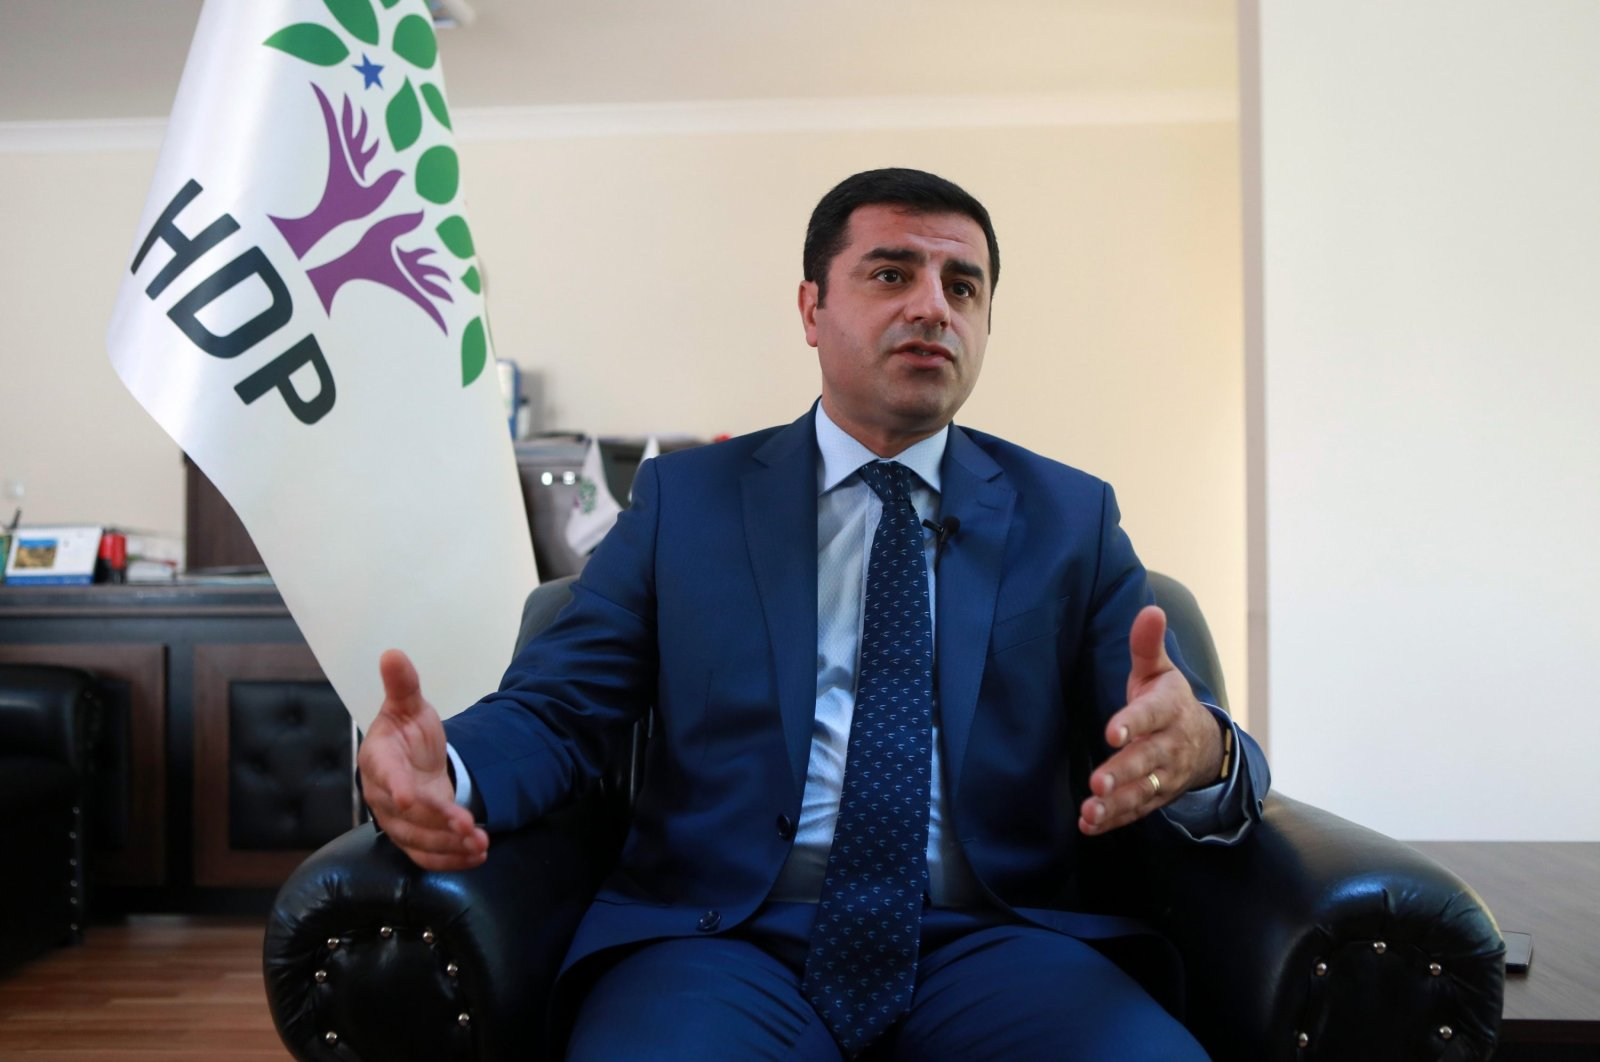 Former co-leader of the pro-PKK People's Democratic Party (HDP), Selahattin Demirtaş, speaks during an interview in Ankara, Turkey, July 22, 2016. (AFP)